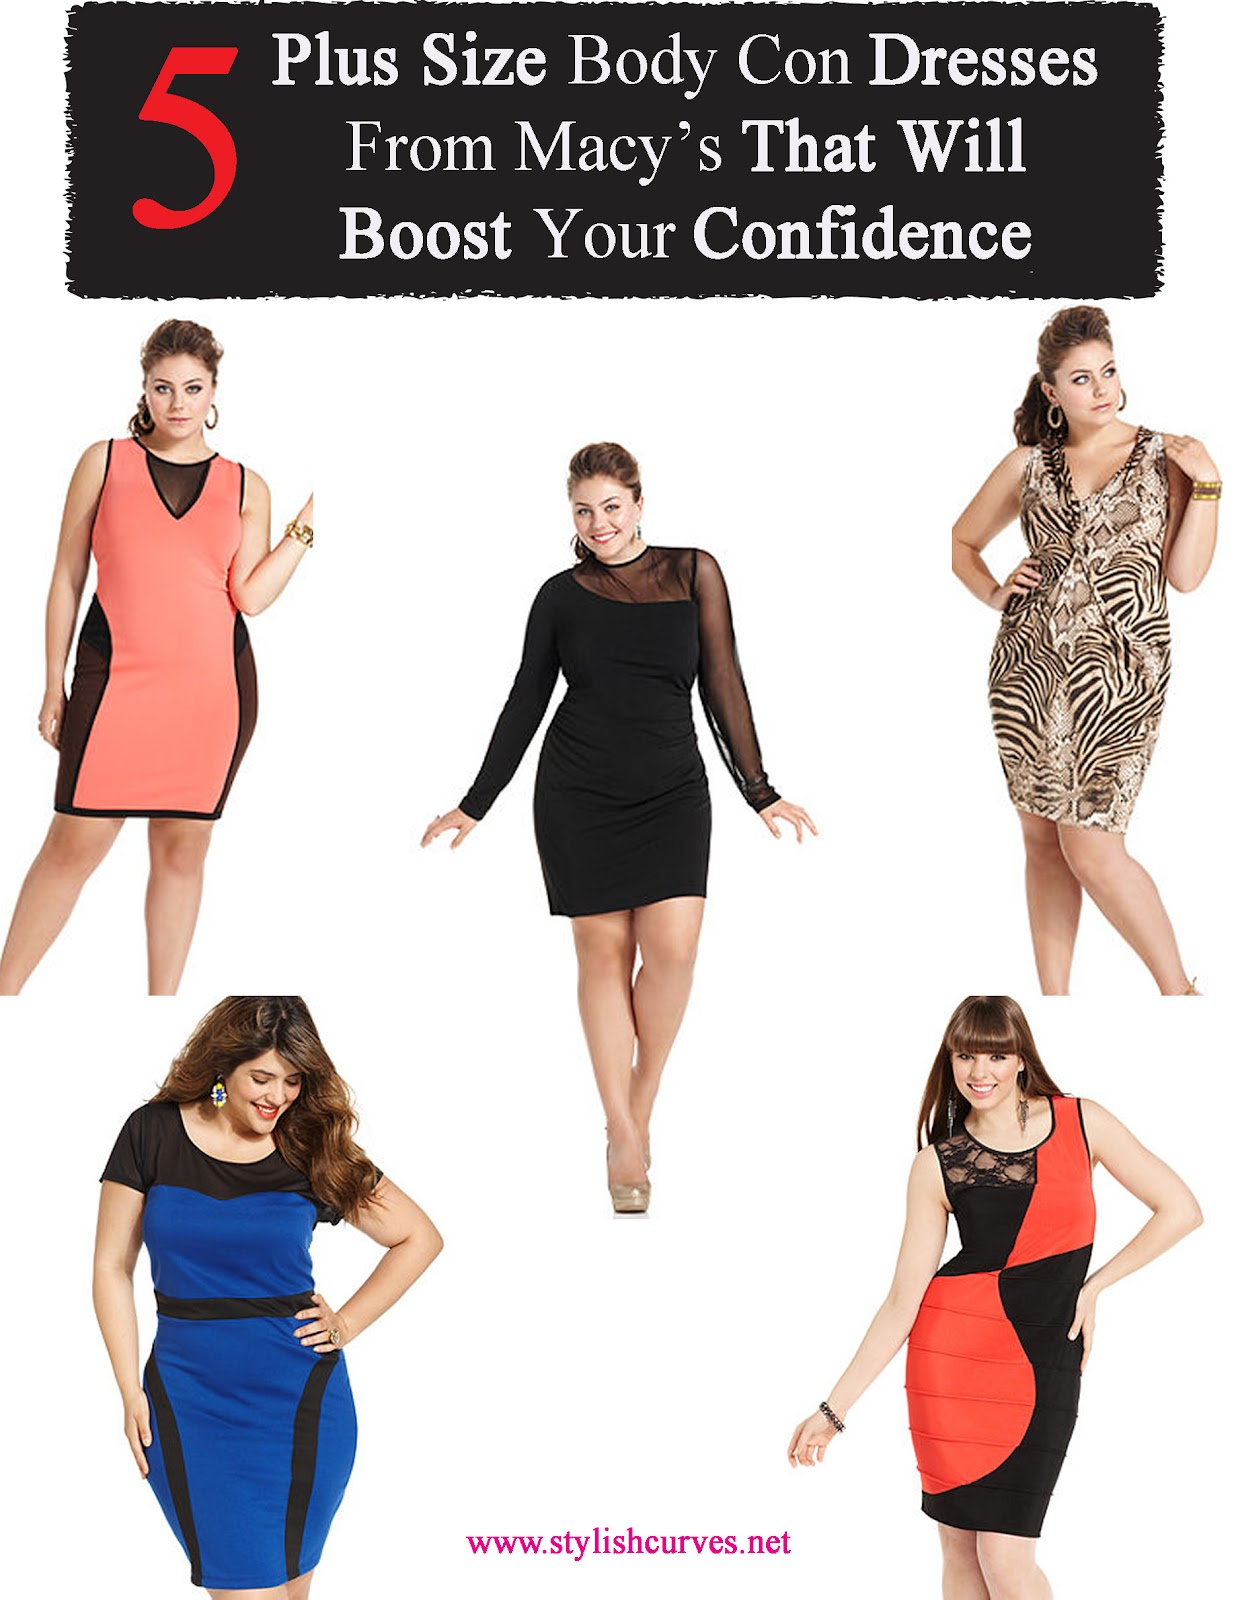 PLUS SIZE STYLE: 5 PLUS SIZE BODY CON DRESSES FROM MACY\'S THAT WILL ...